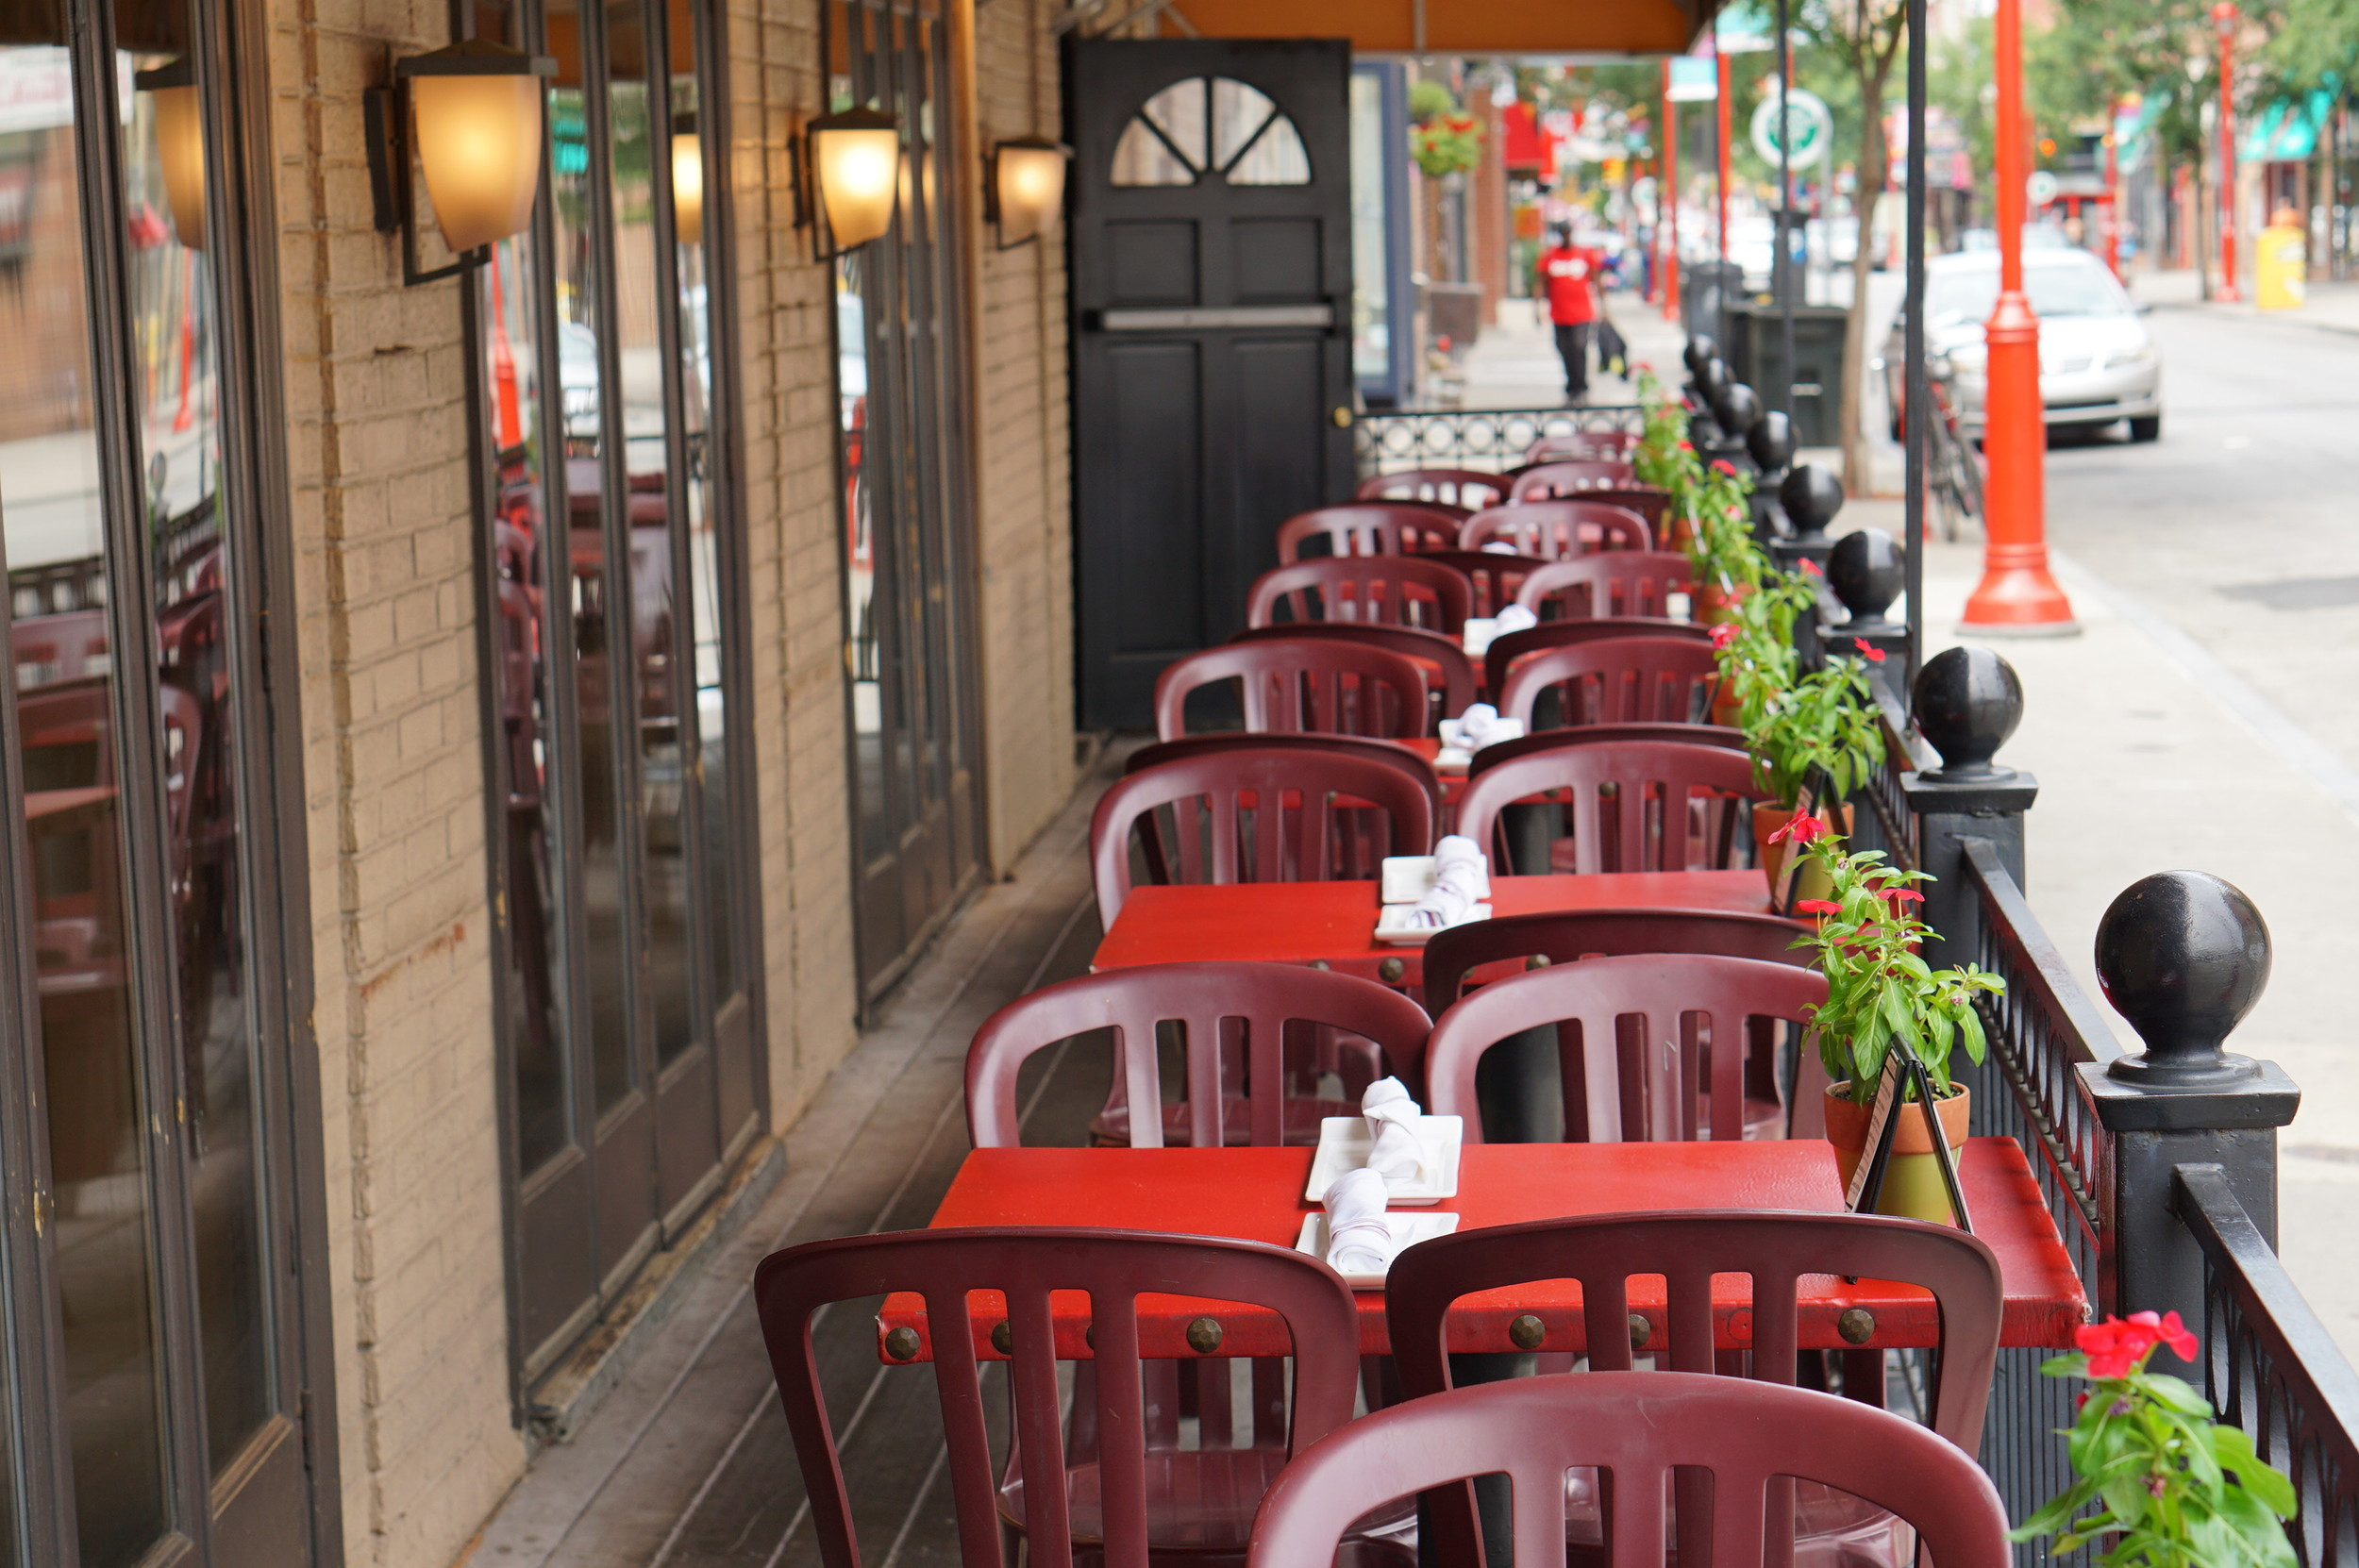 Bridget Foys, Outdoor seating, south street, Openinphilly, restaurant, philadelphia, pope francis, openinphilly, popeinphilly, aversapr